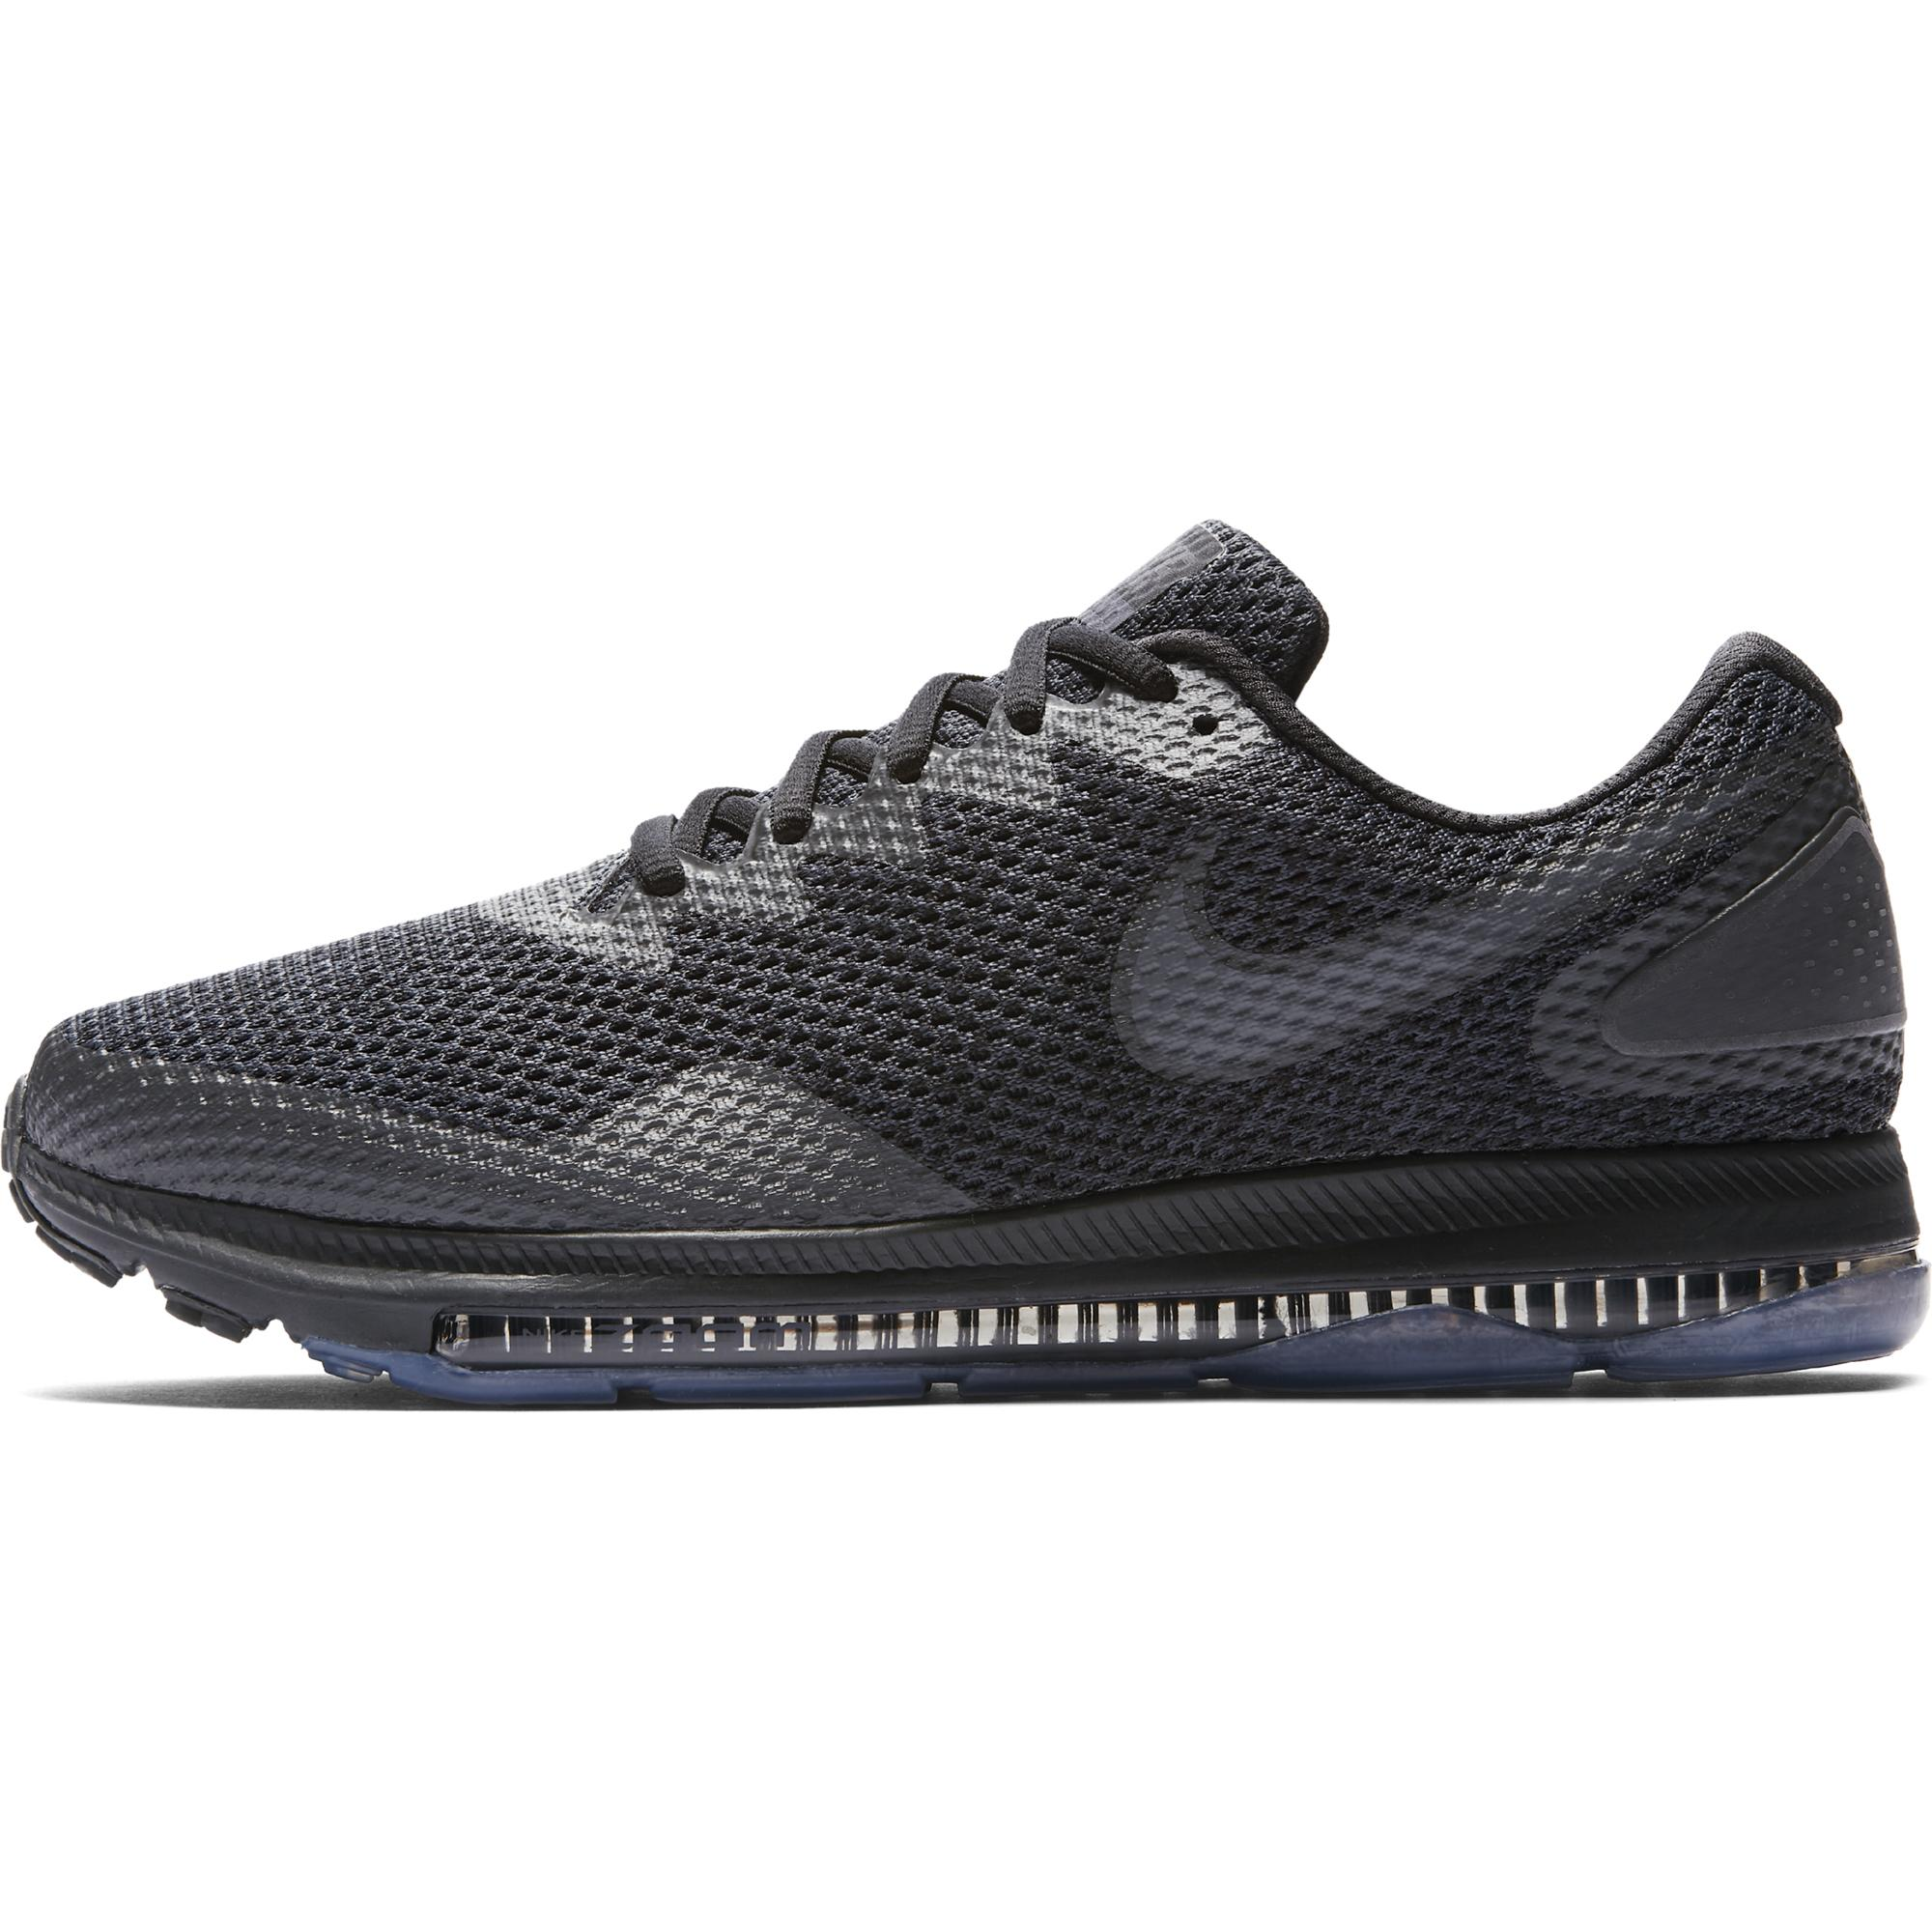 909359694961 Nike Shoes Zoom All Out Low 2 Black dark Grey-anthracite - Tifoshop.com